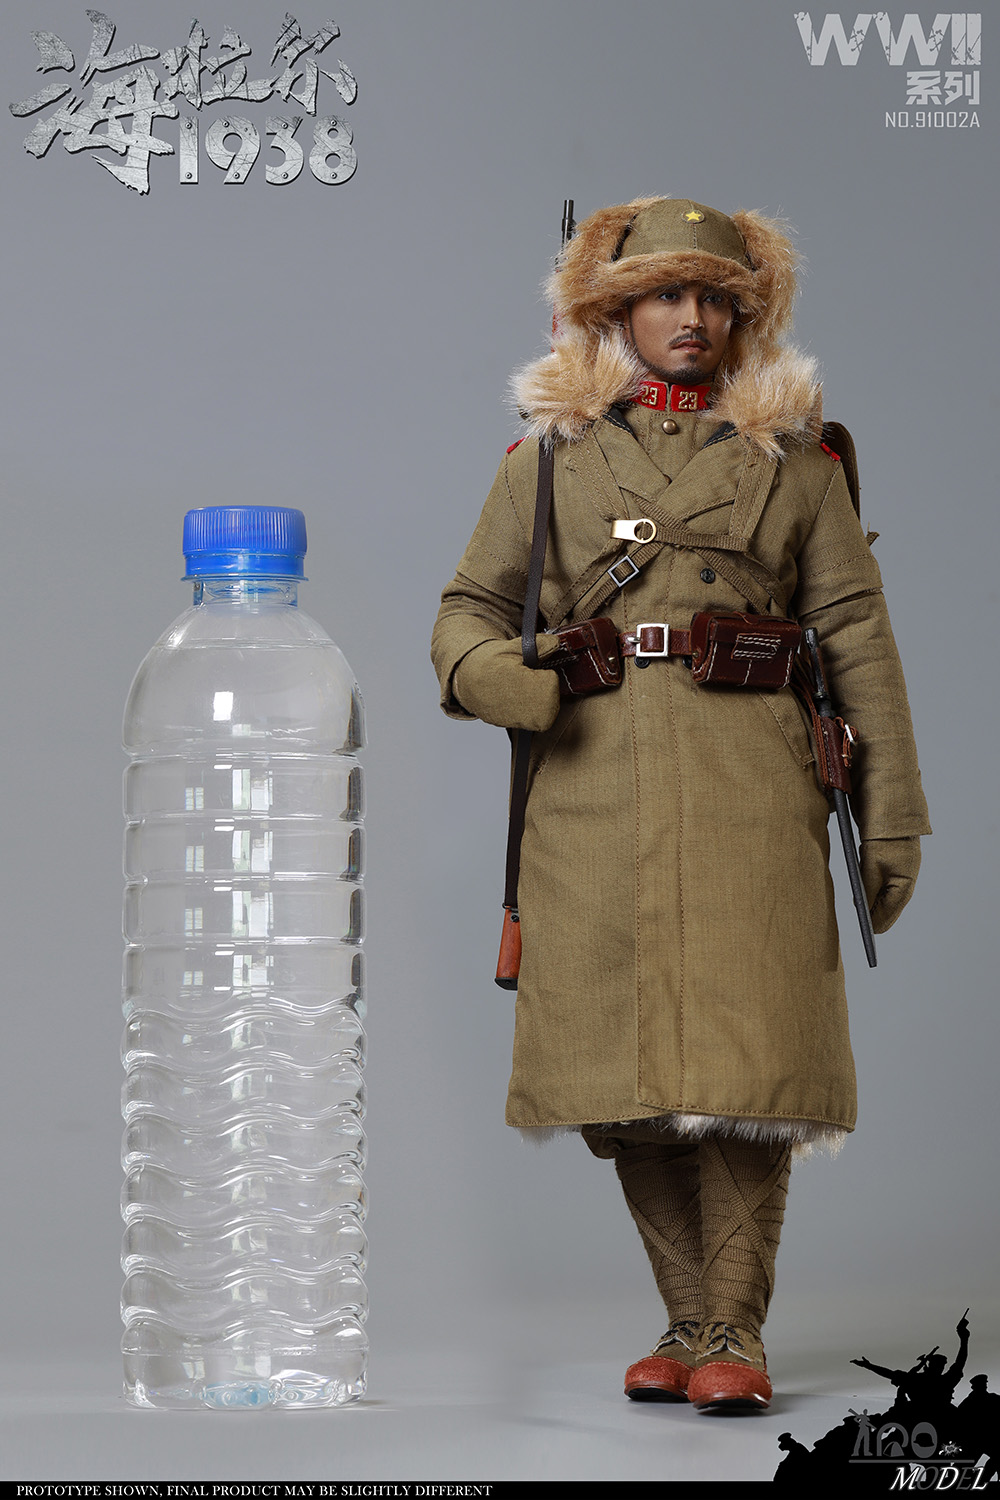 male - NEW PRODUCT: IQO Model: 1/6 WWII Series 1938 Hailar Scout (NO.91002A, B) 22051710